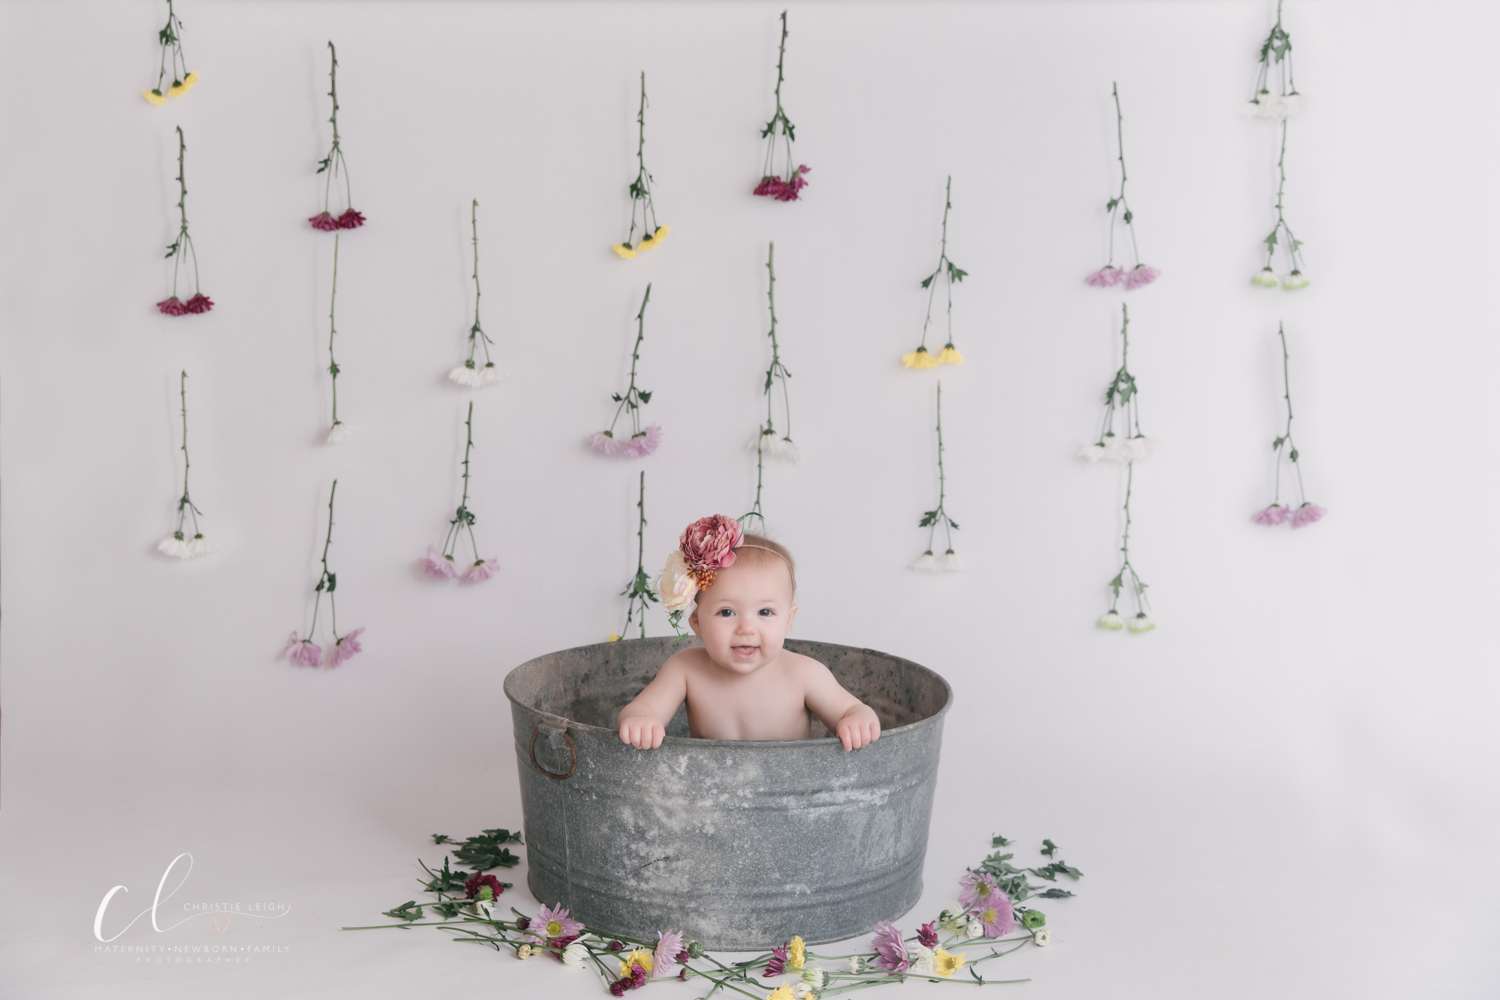 milk_bath_birthday_spash _session_little_girl_turns_one_floral_milk_bath_first_birthday_pictures_in_Poland_Ohio_by_child_and_family_photogrpaher_christie_leigh_photo-2.JPG